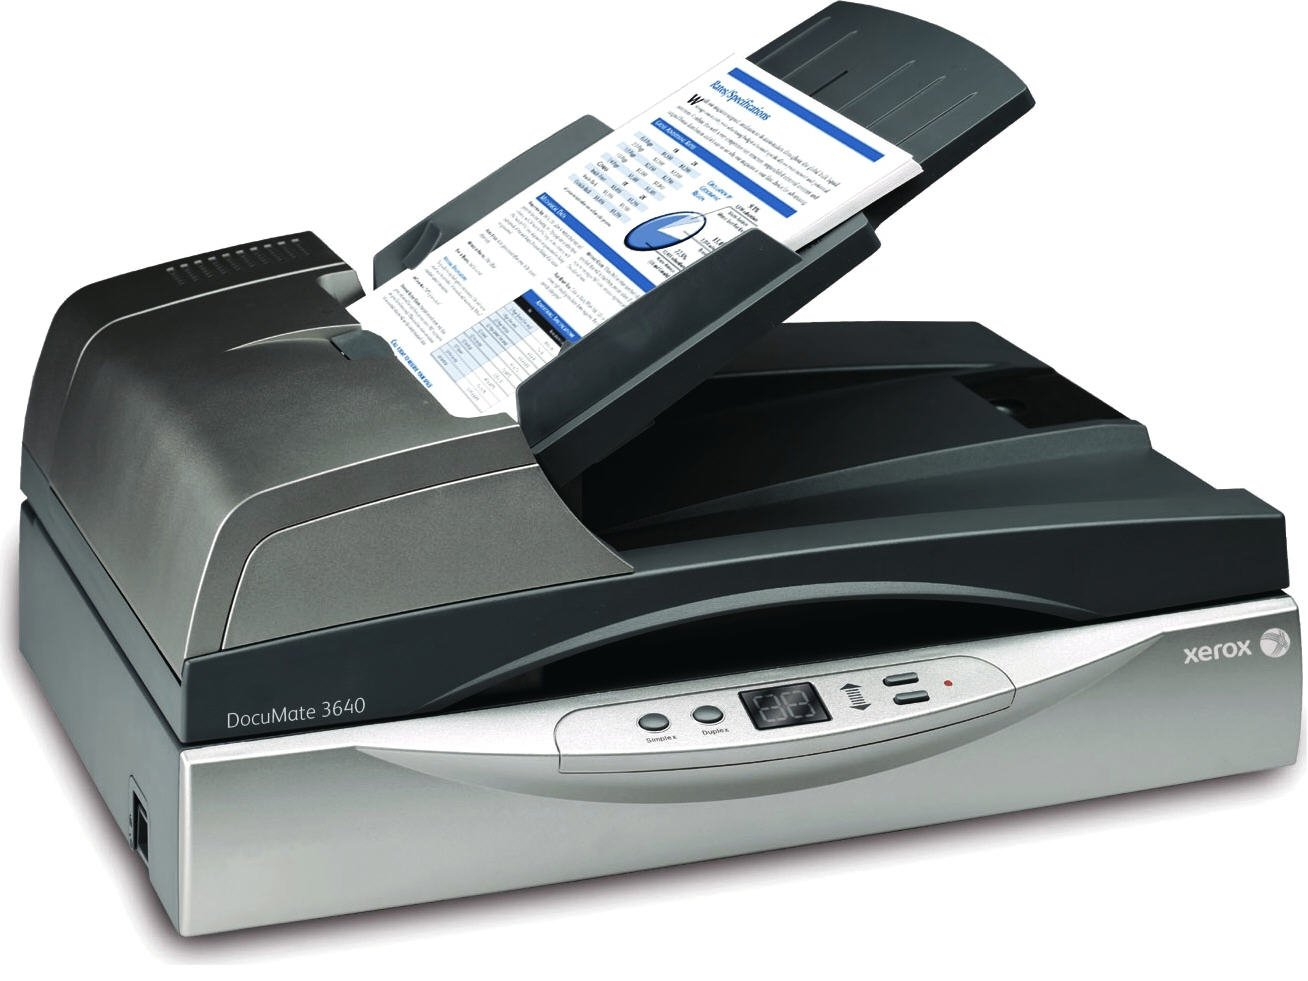 Xerox DocuMate 3640 Departmental Duplex 40 PPM 80 IPM Legal Size Flatbed Scanner